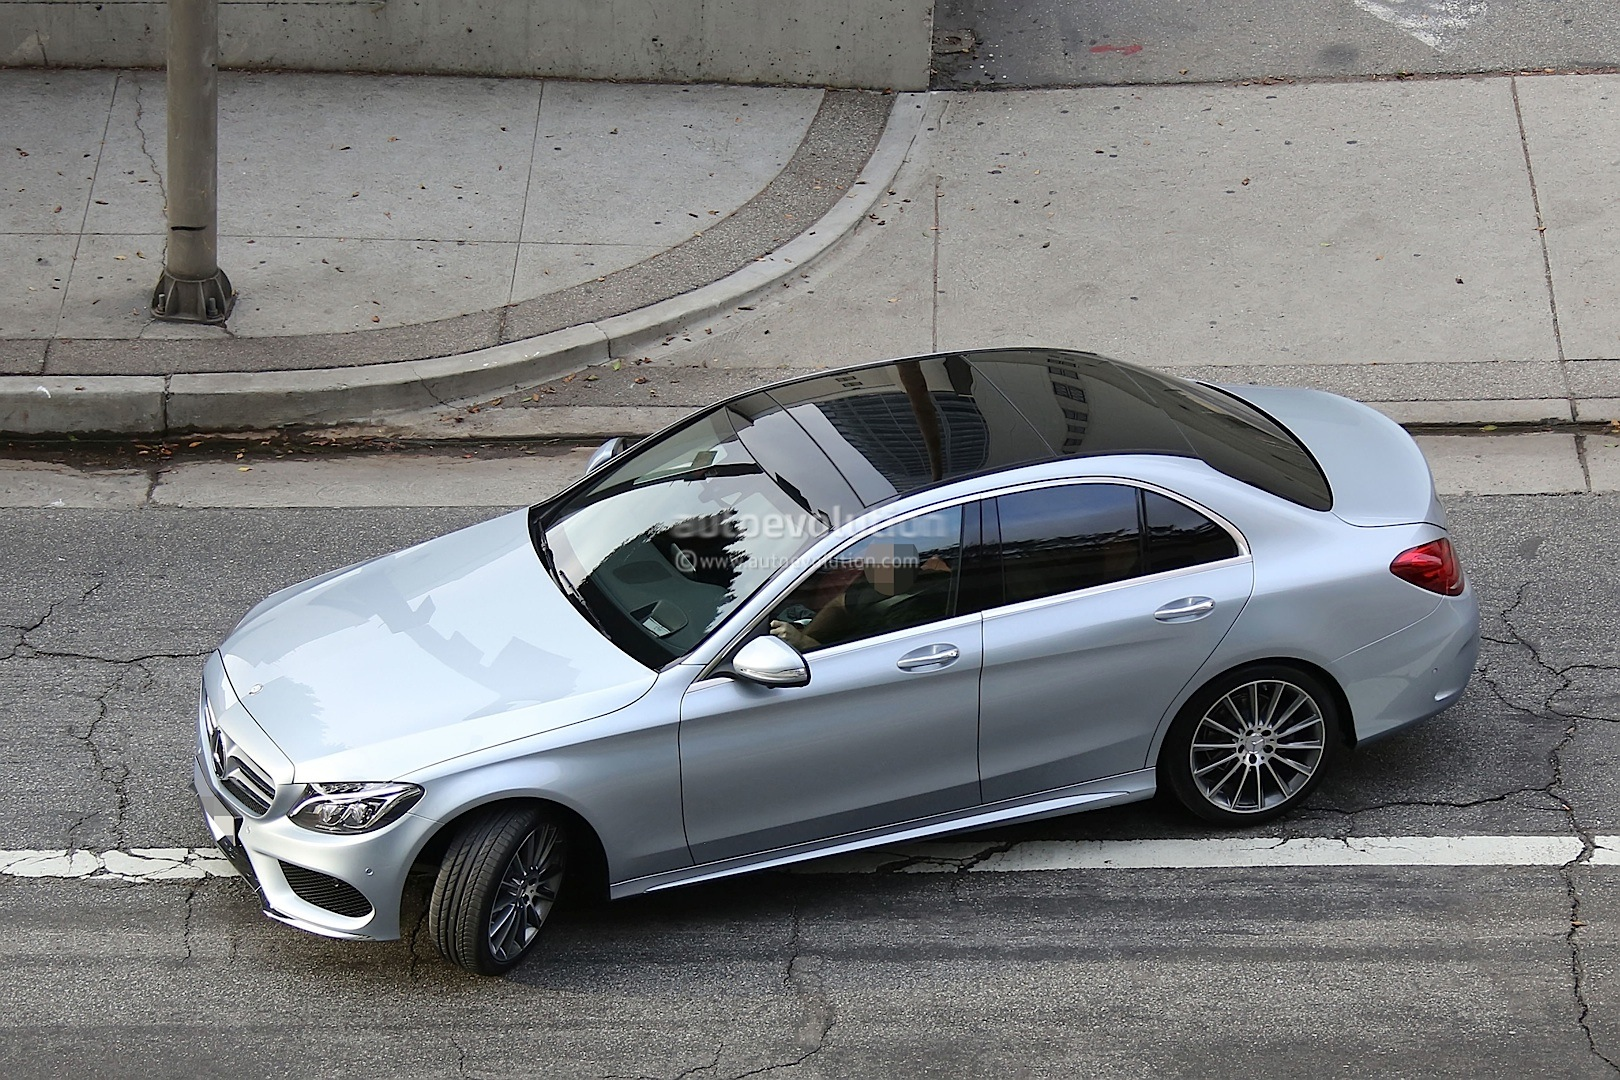 2015 mercedes benz c 180 w205 versus 2014 c 180 w204 for Mercedes benz w